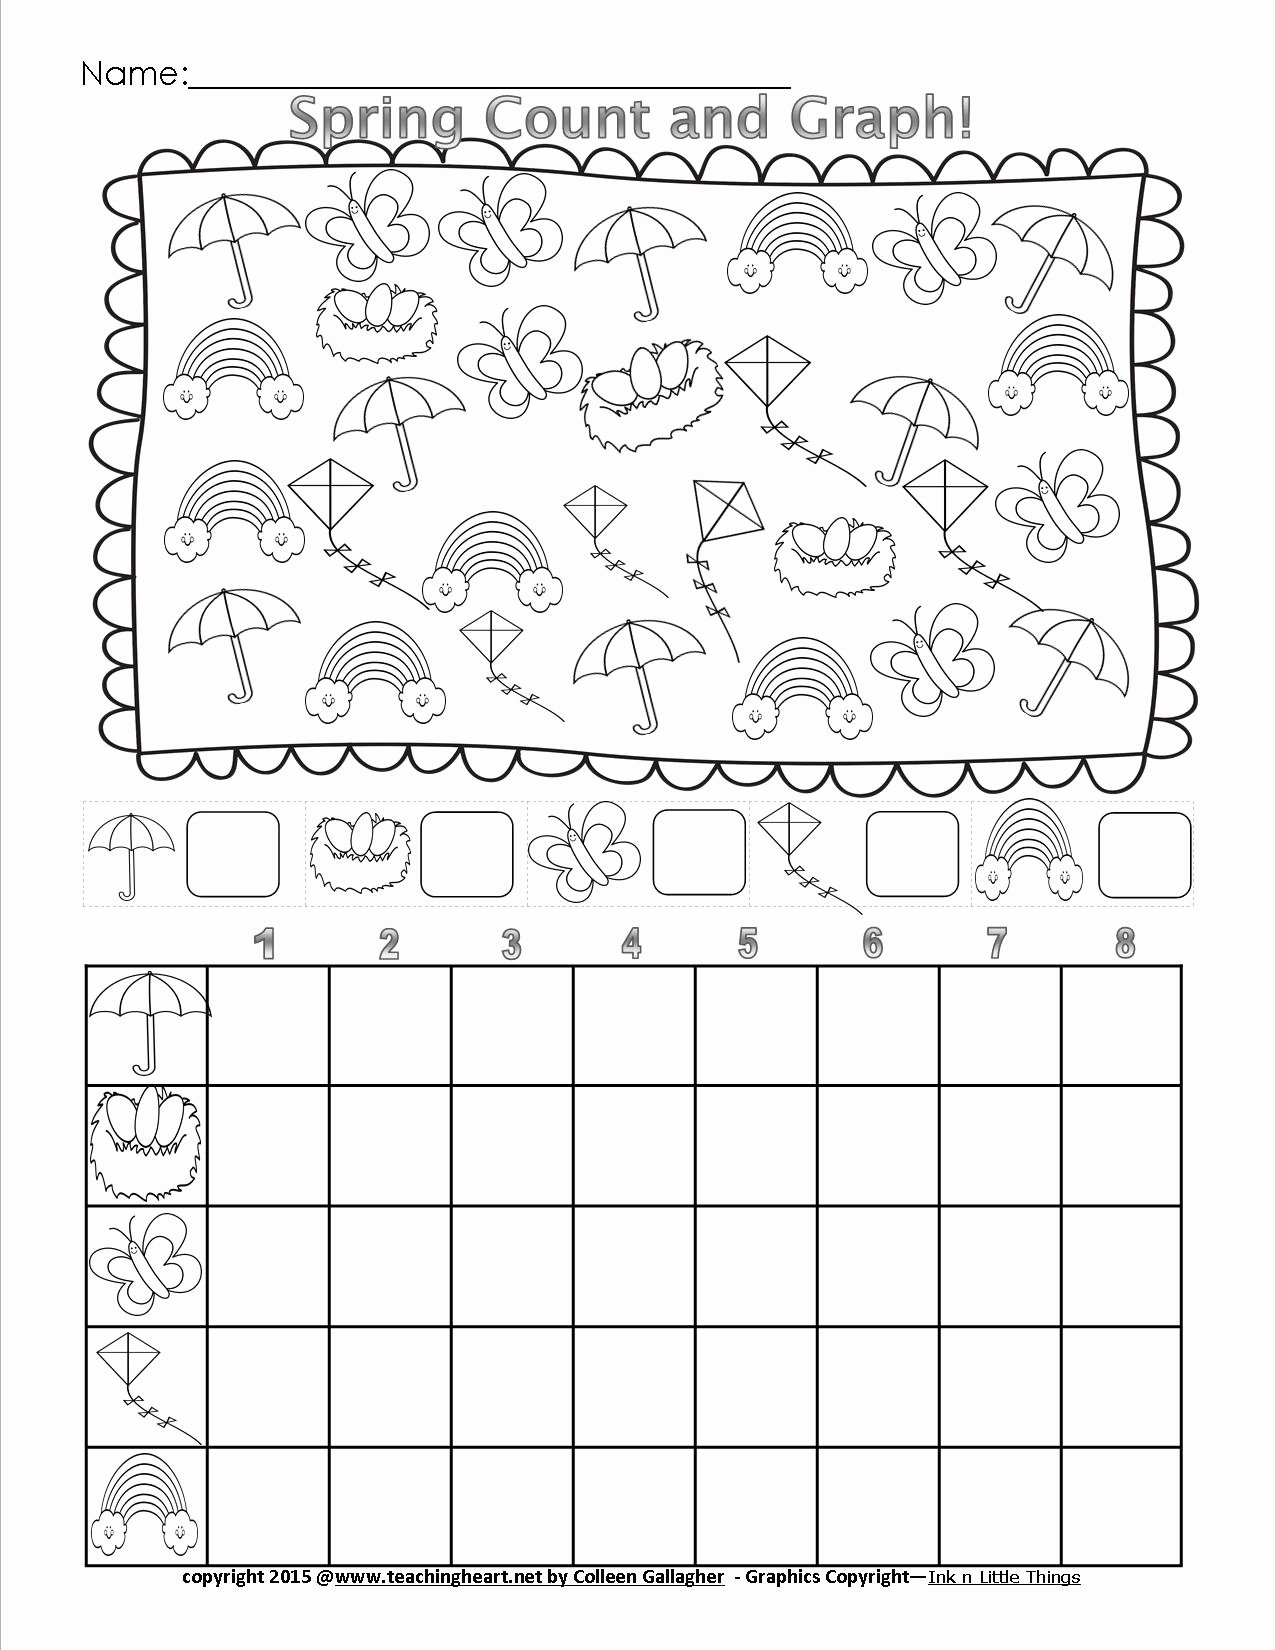 Graphing Worksheets for First Grade Kids Spring Count and Graph Free Teaching Heart Blog Graphing